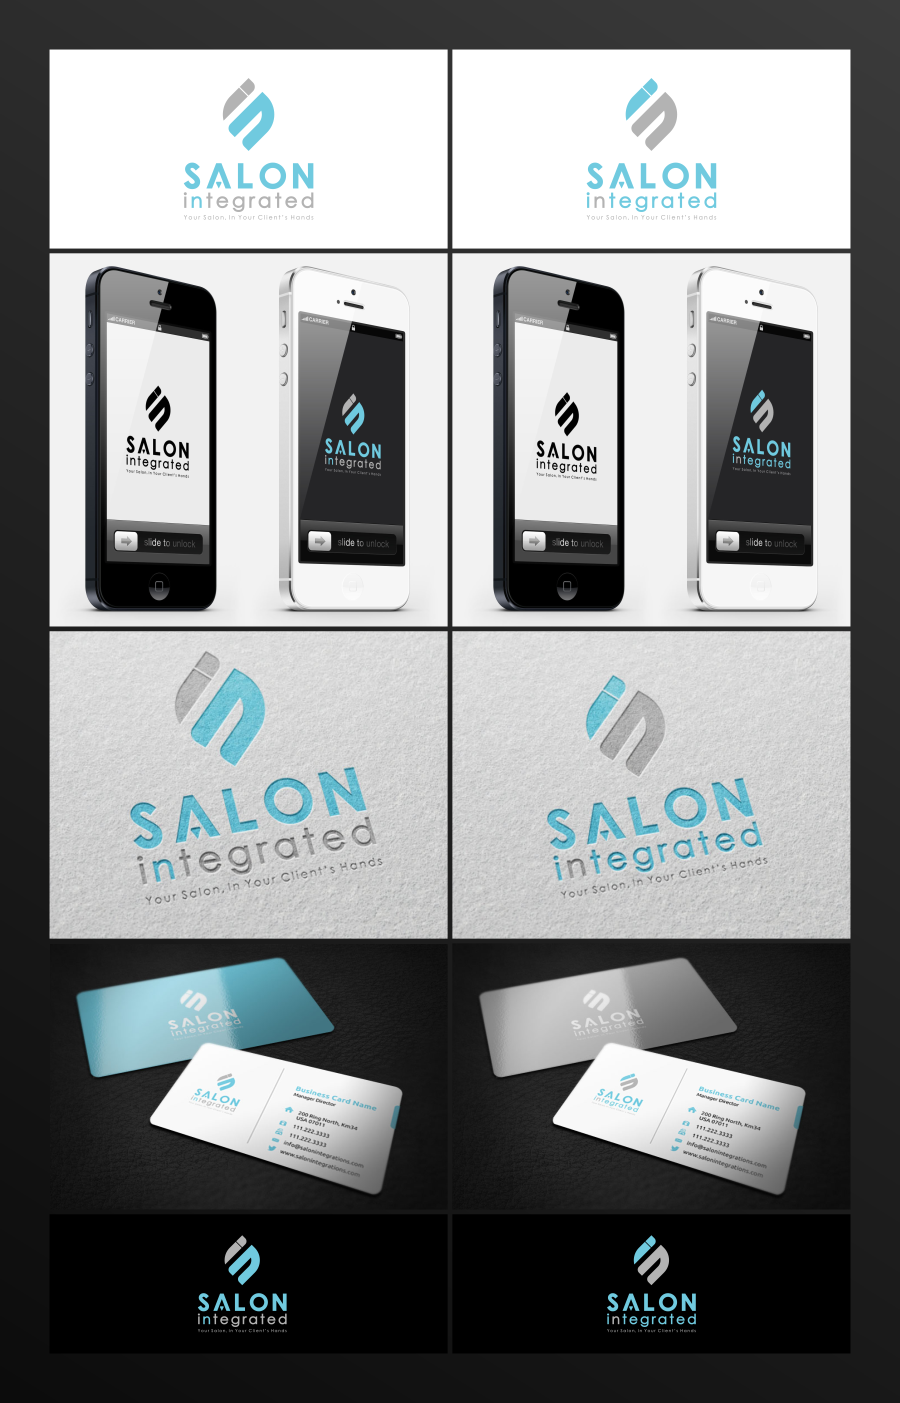 App Company BLOWING UP! Need new design! Simplicity wanted!! Guaranteed Payment!